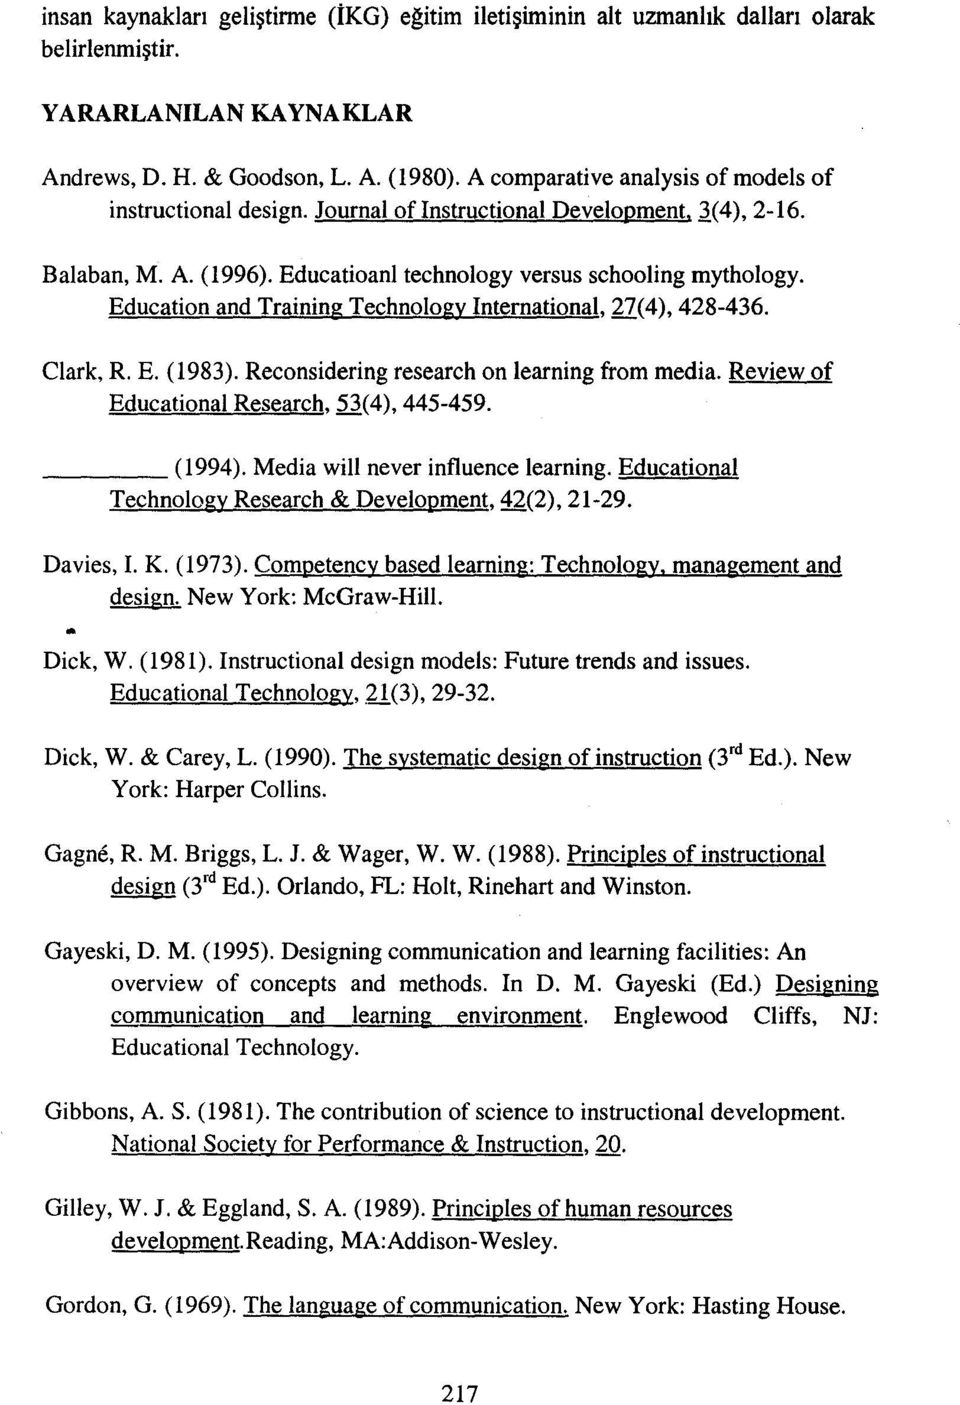 Education and Training Technology International, 27(4), 428-436. Clark, R. E. (1983). Reconsidering research on learning from media. Review of Educational Research, 53(4), 445-459. (1994).